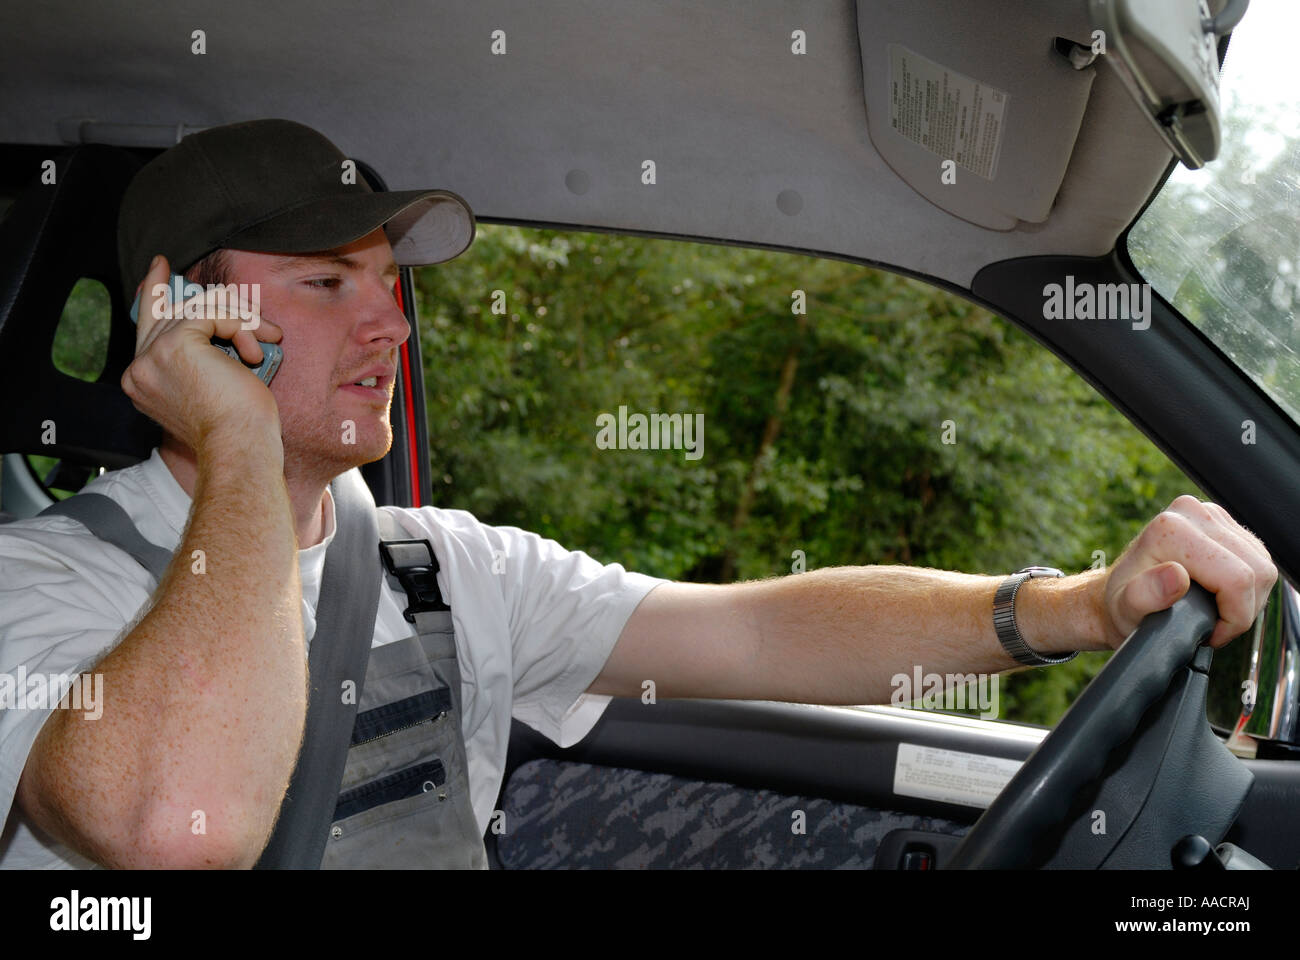 Cardriver with telephone - Germany, Europe Stock Photo